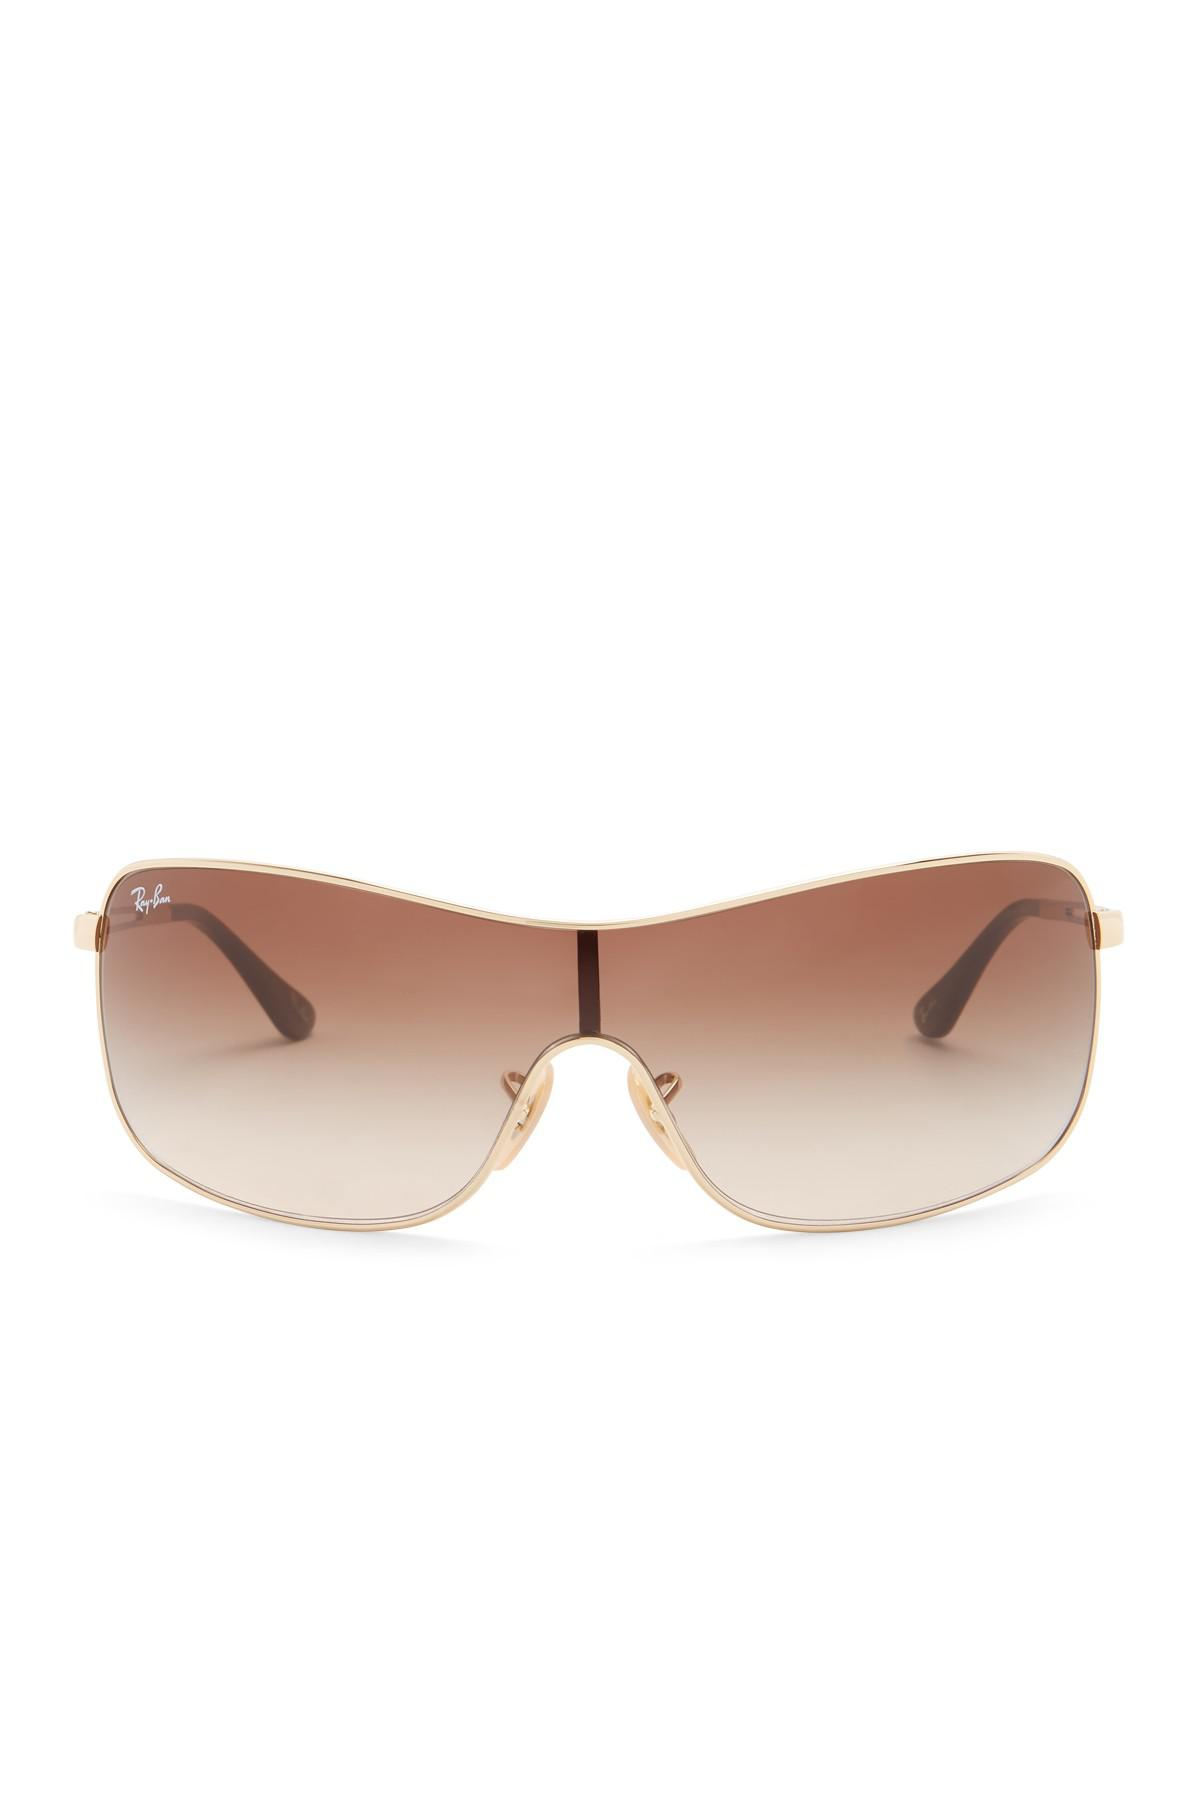 6530c91731d Lyst - Ray-Ban 73mm Shield High Street Sunglasses in Brown